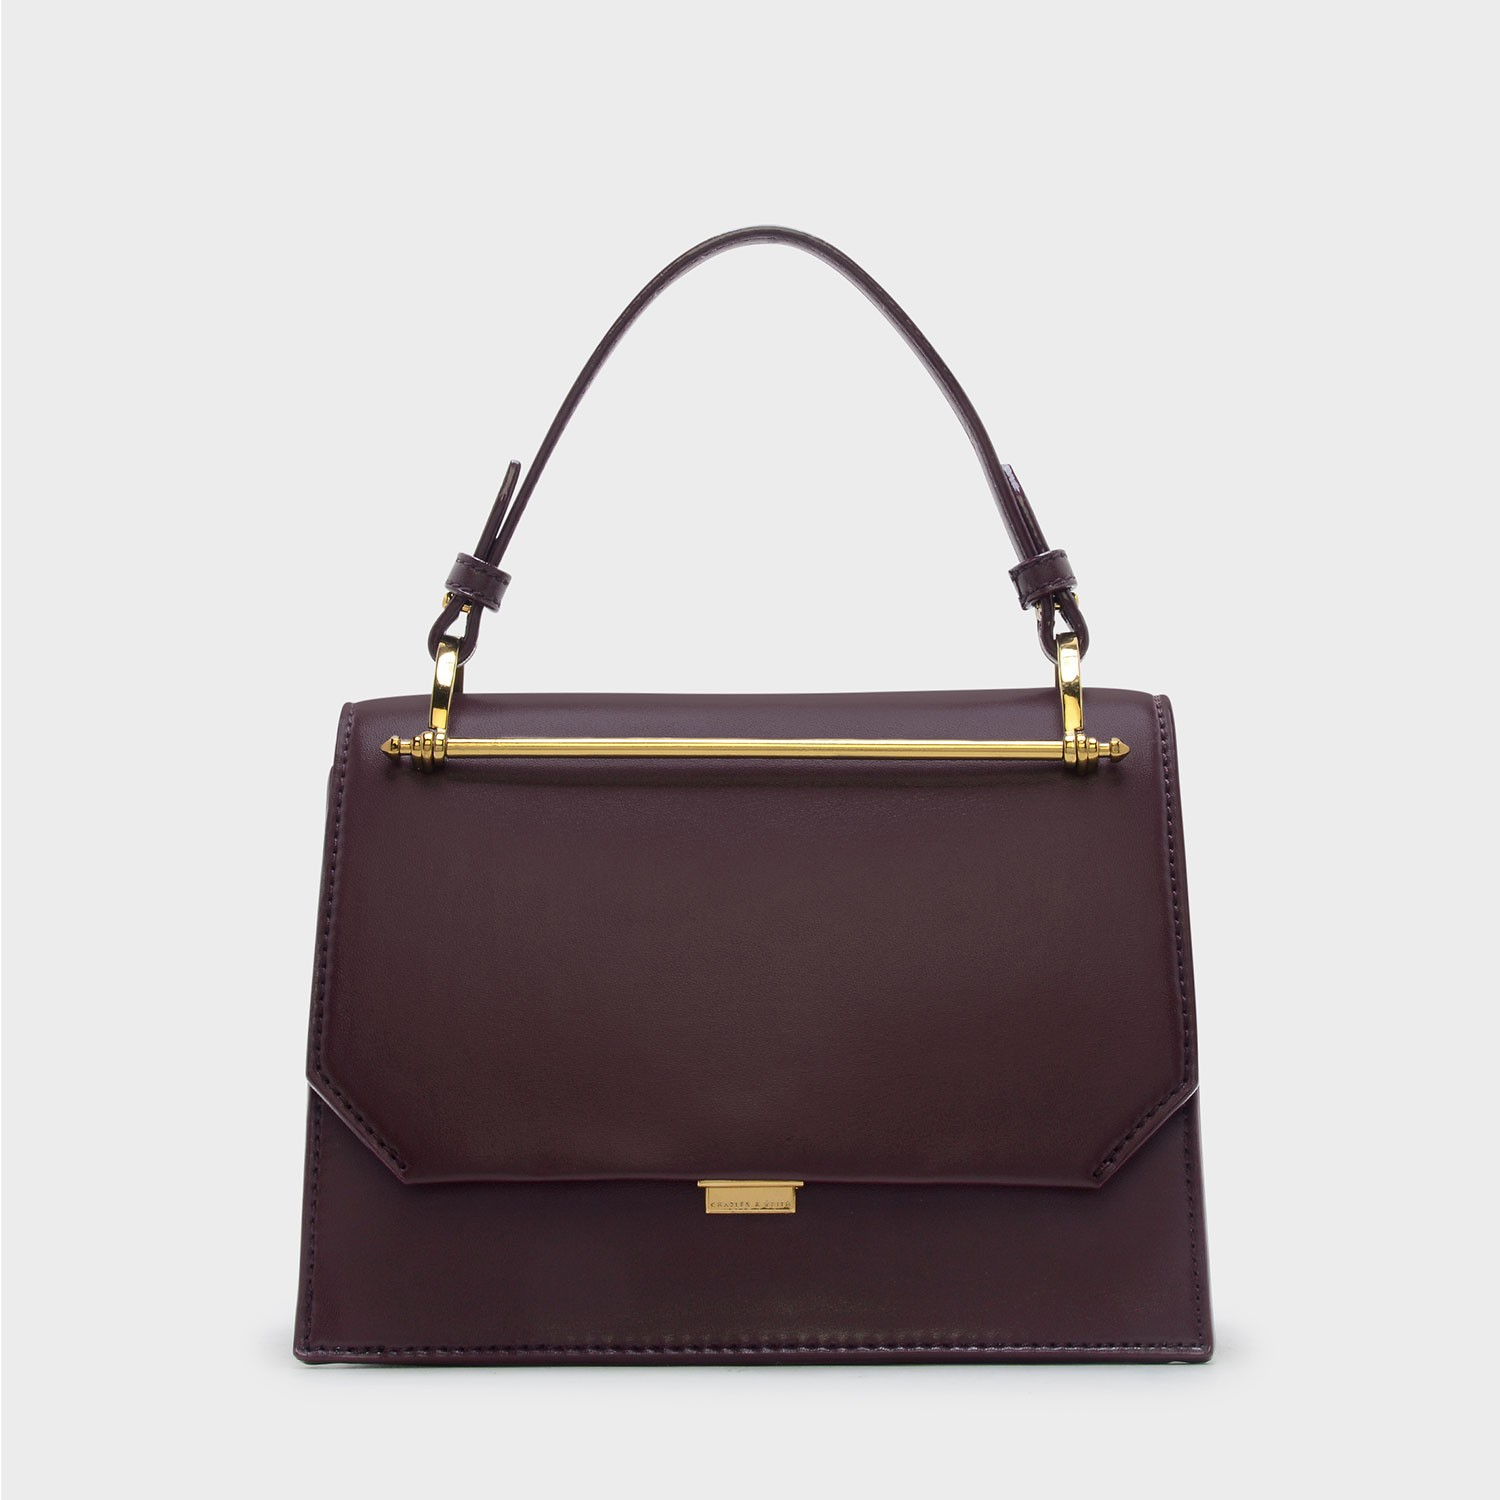 CHARLES & KEITH STRUCTURED HANDBAG *Burgundy